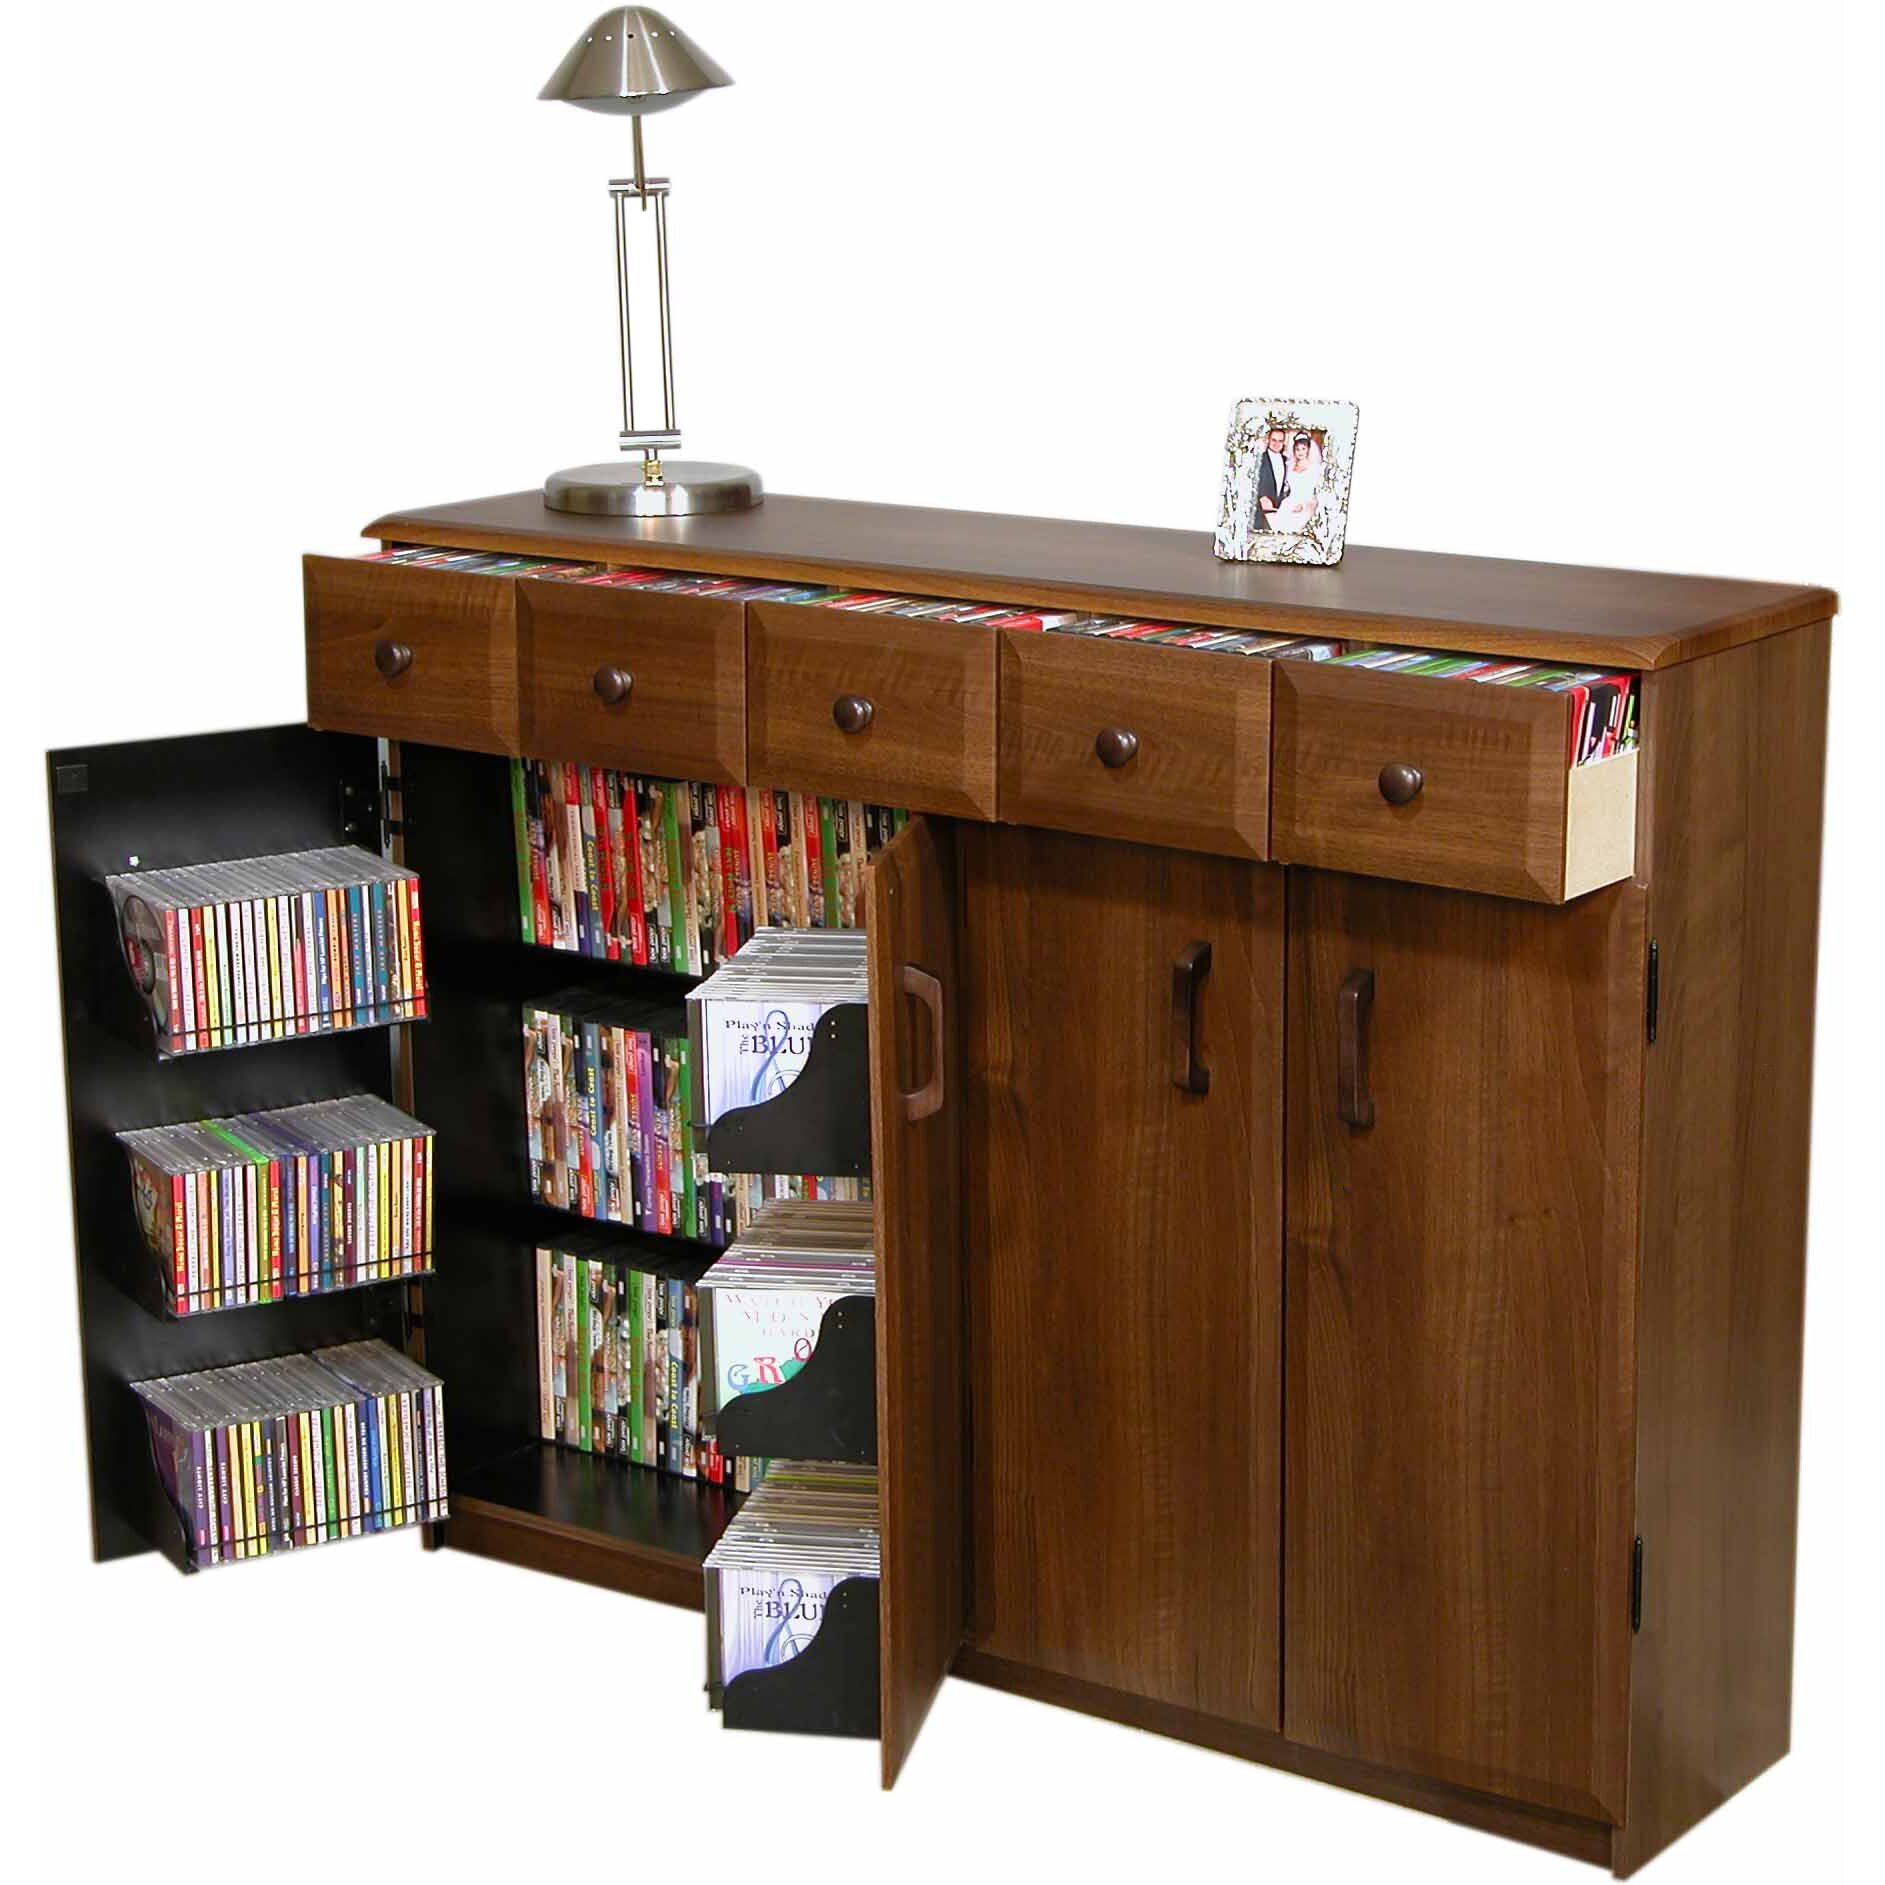 Vhz Entertainment Multimedia Cabinet With Library Style